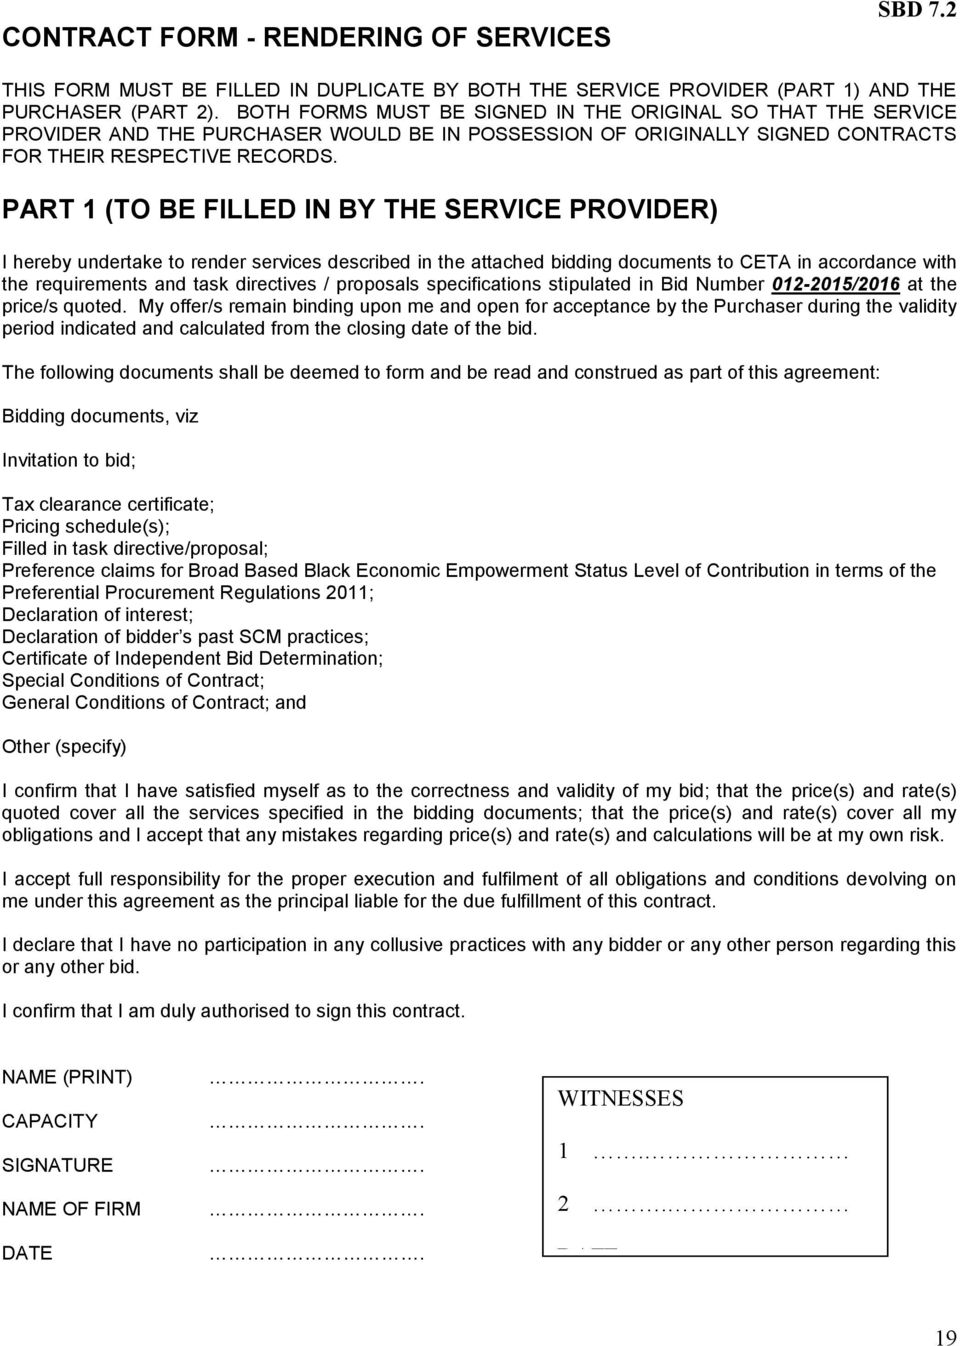 PART 1 (TO BE FILLED IN BY THE SERVICE PROVIDER) I hereby undertake to render services described in the attached bidding documents to CETA in accordance with the requirements and task directives /